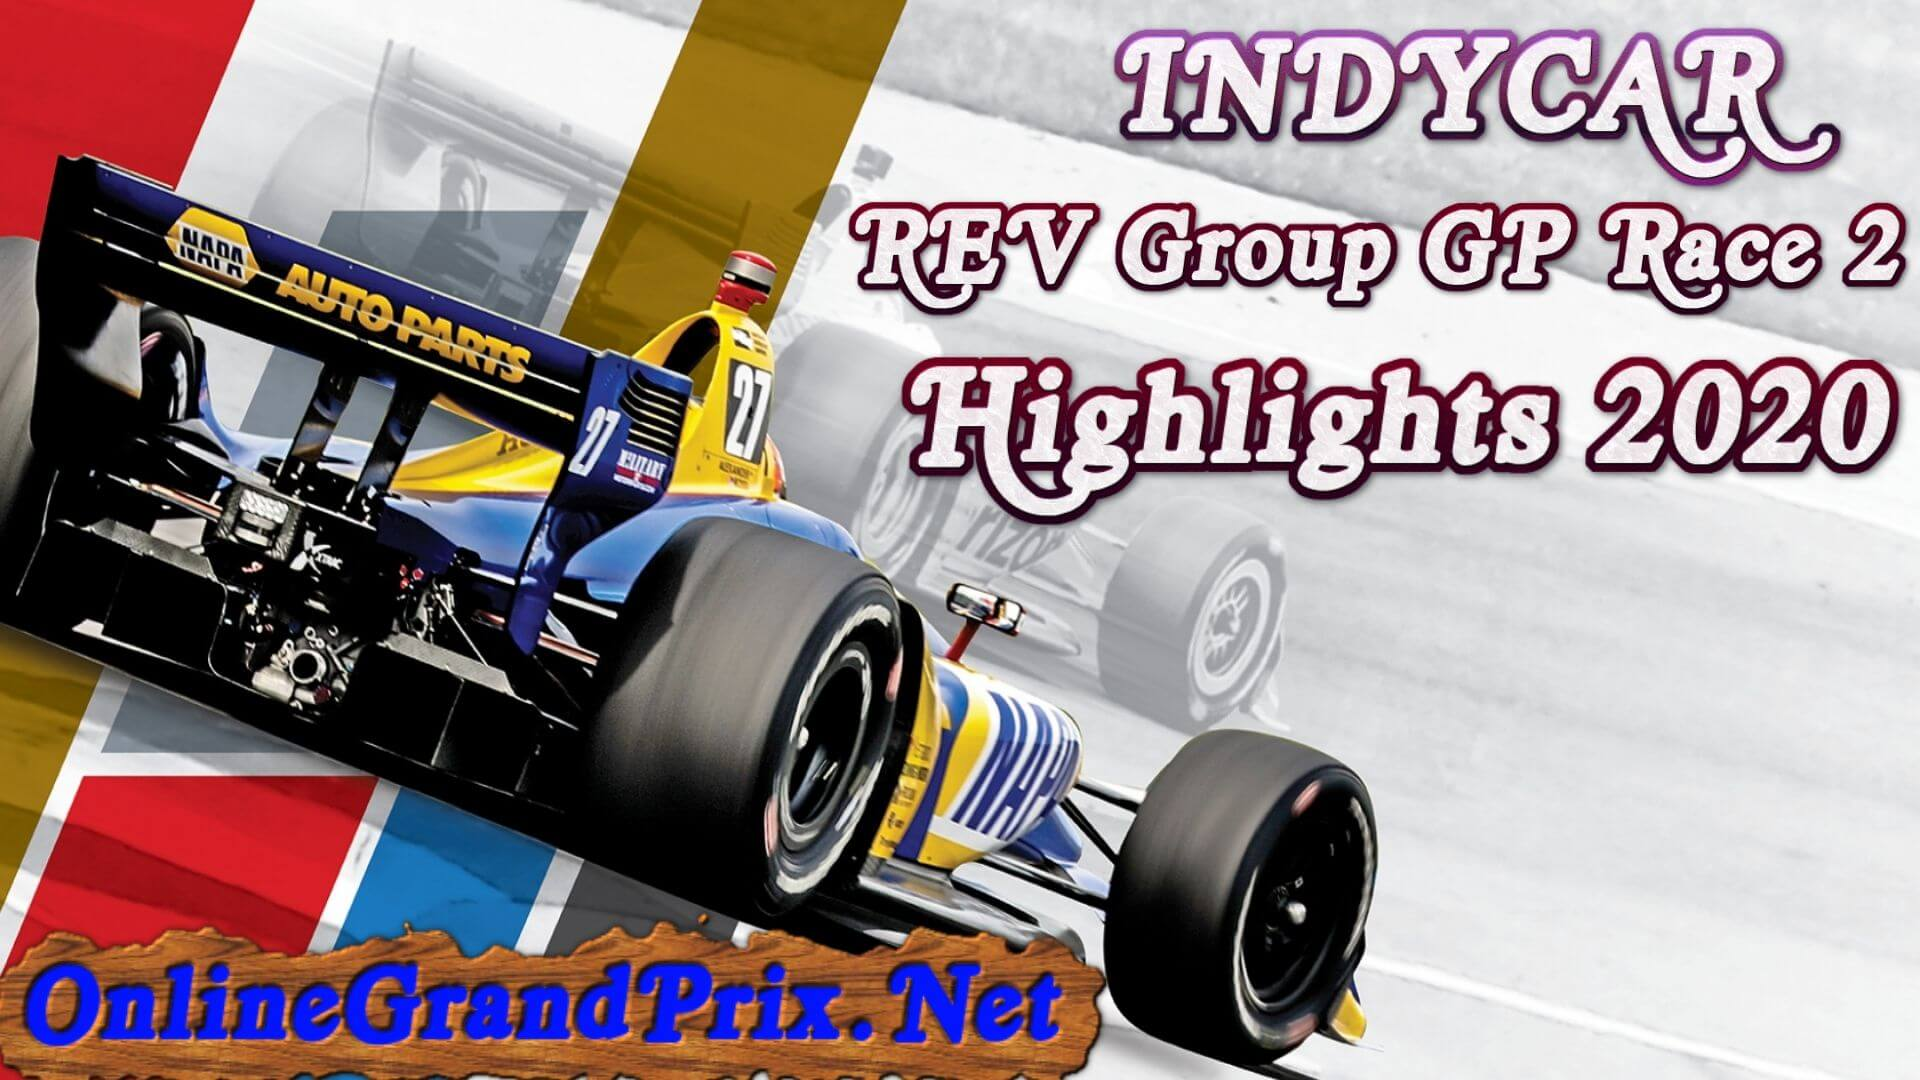 REV Group Grand Prix Race 2 Highlights INDYCAR 2020